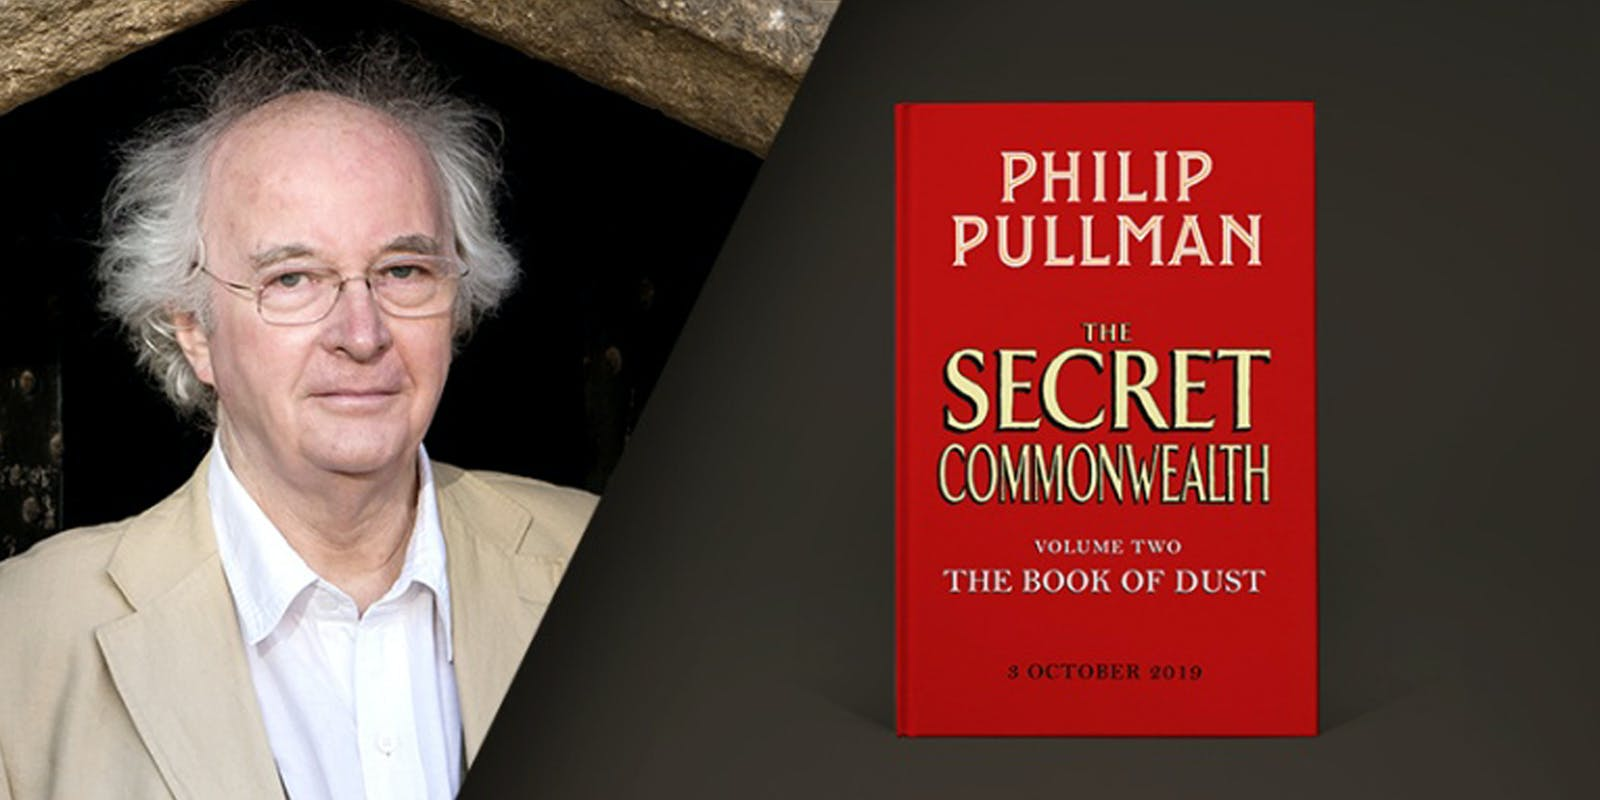 Philip Pullman announces new book The Secret Commonwealth